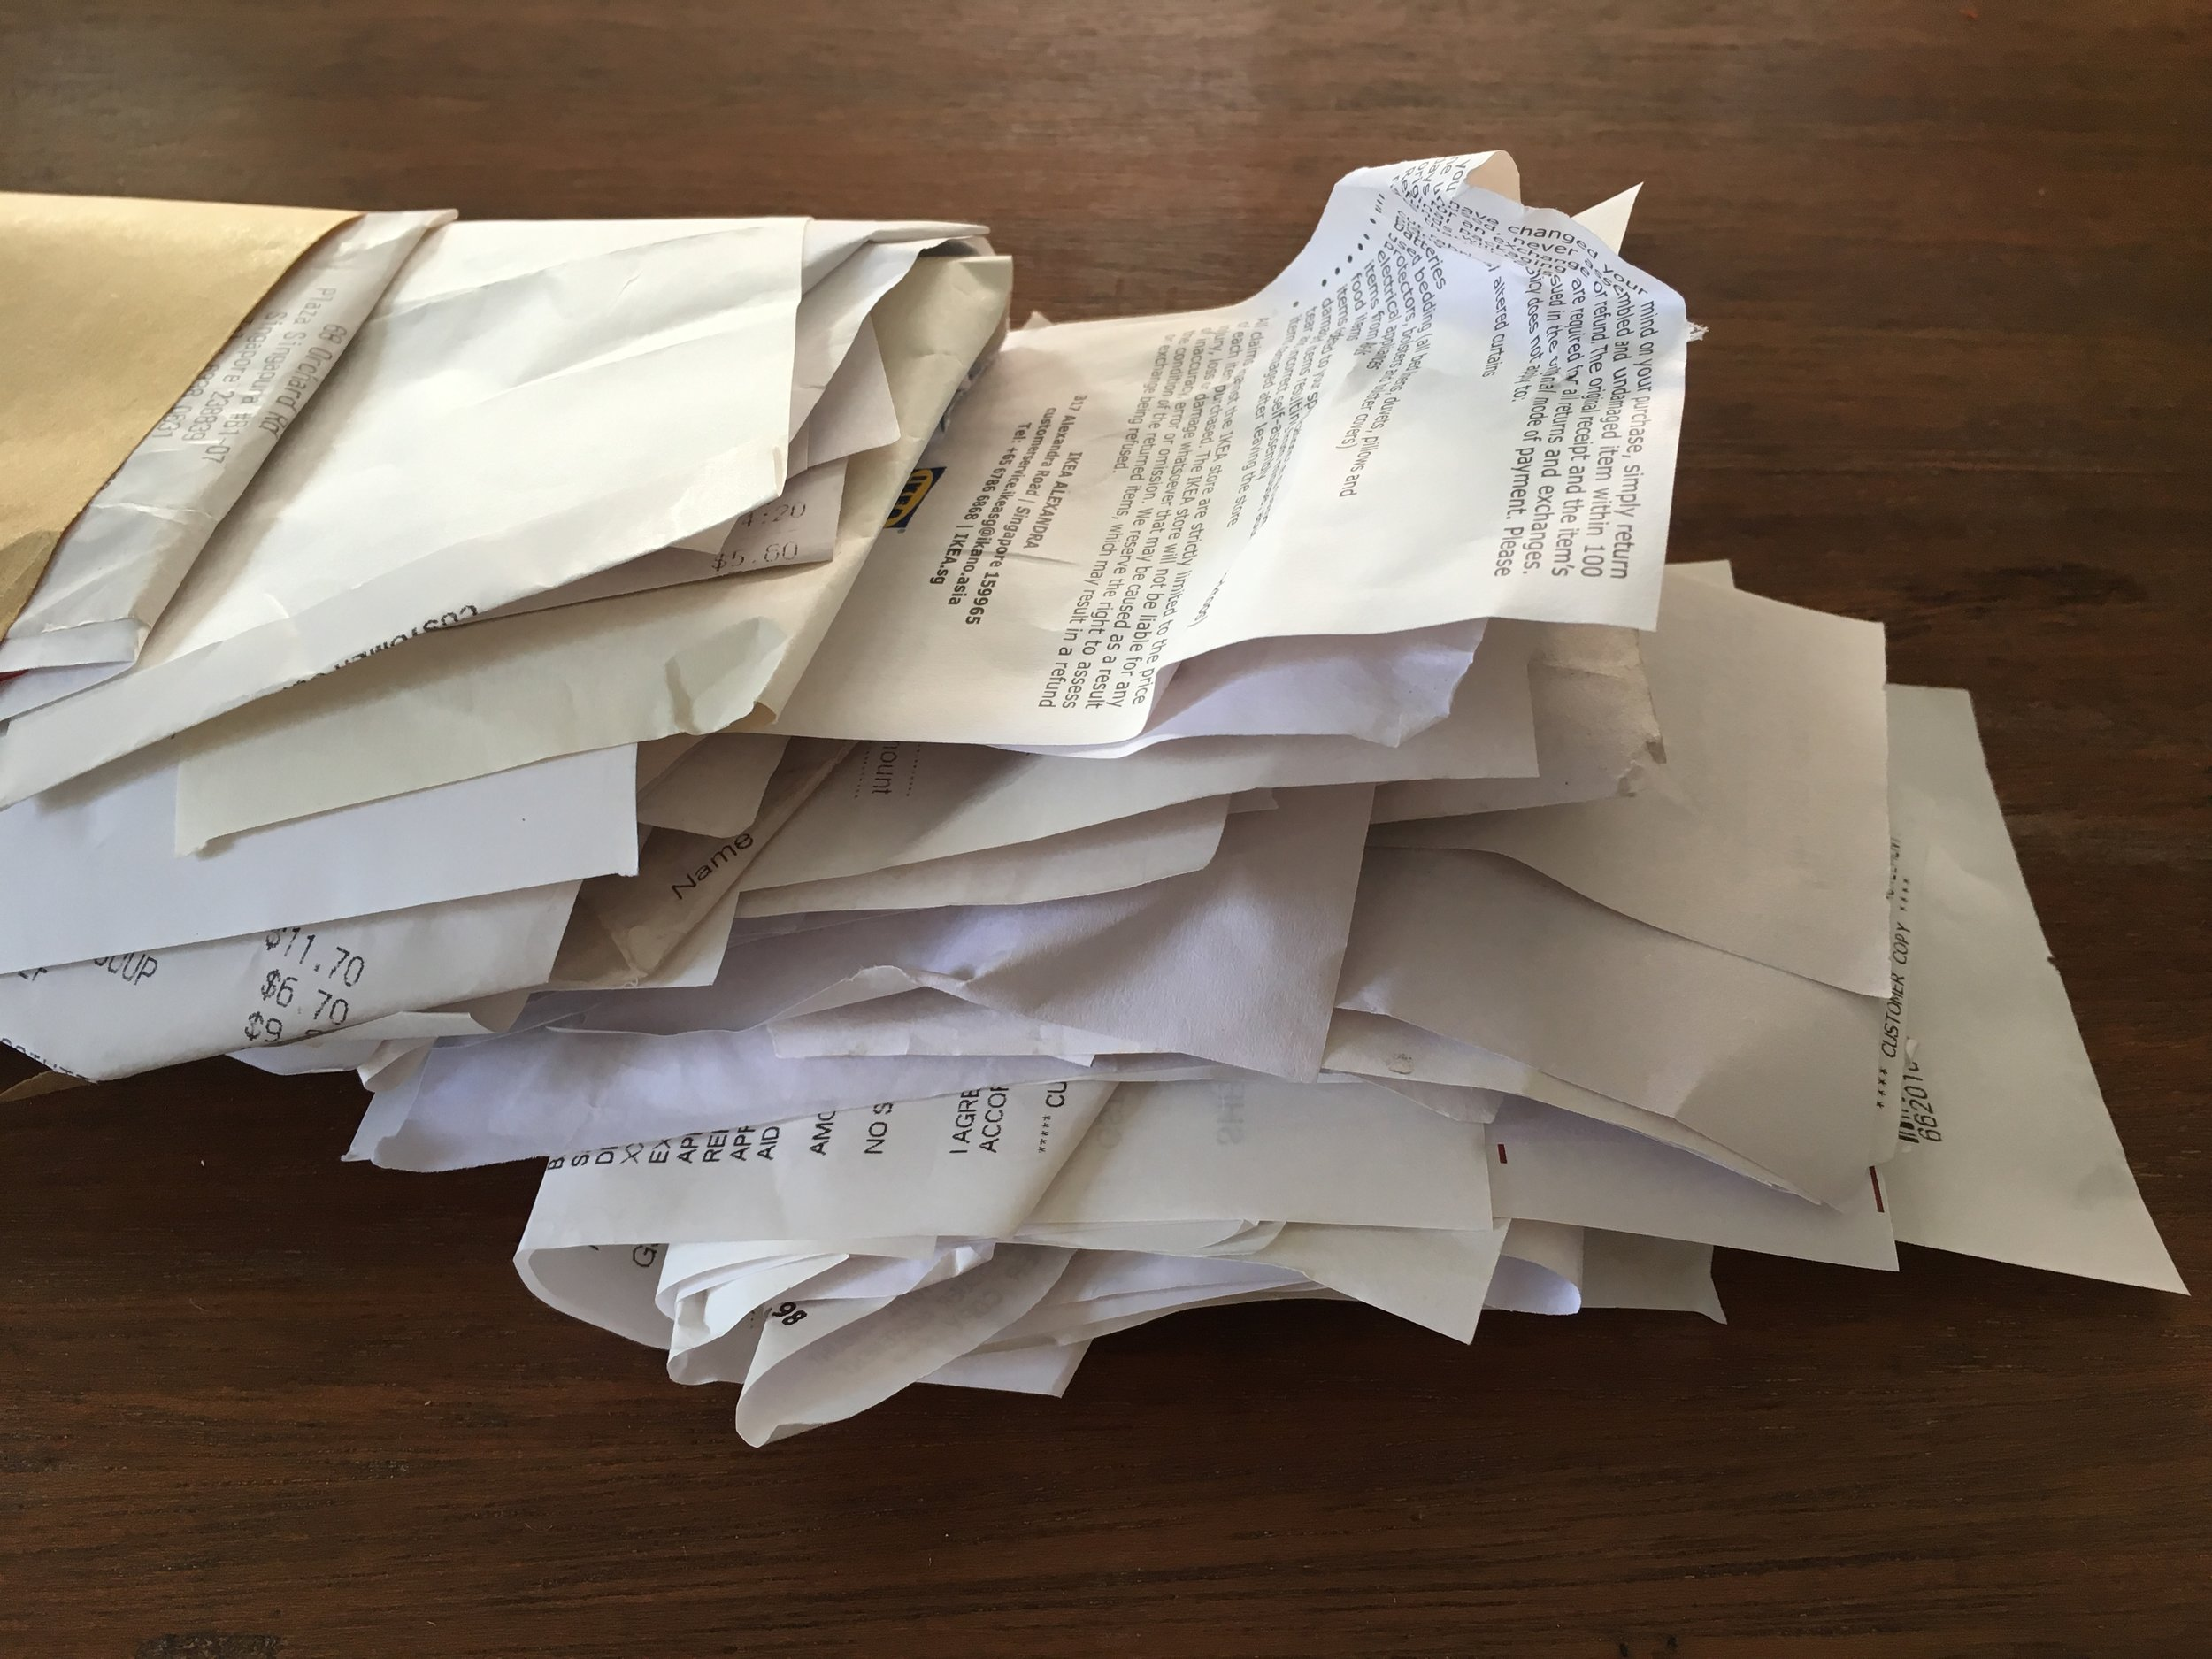 Receipts I've collected over the year -- this is just a handful